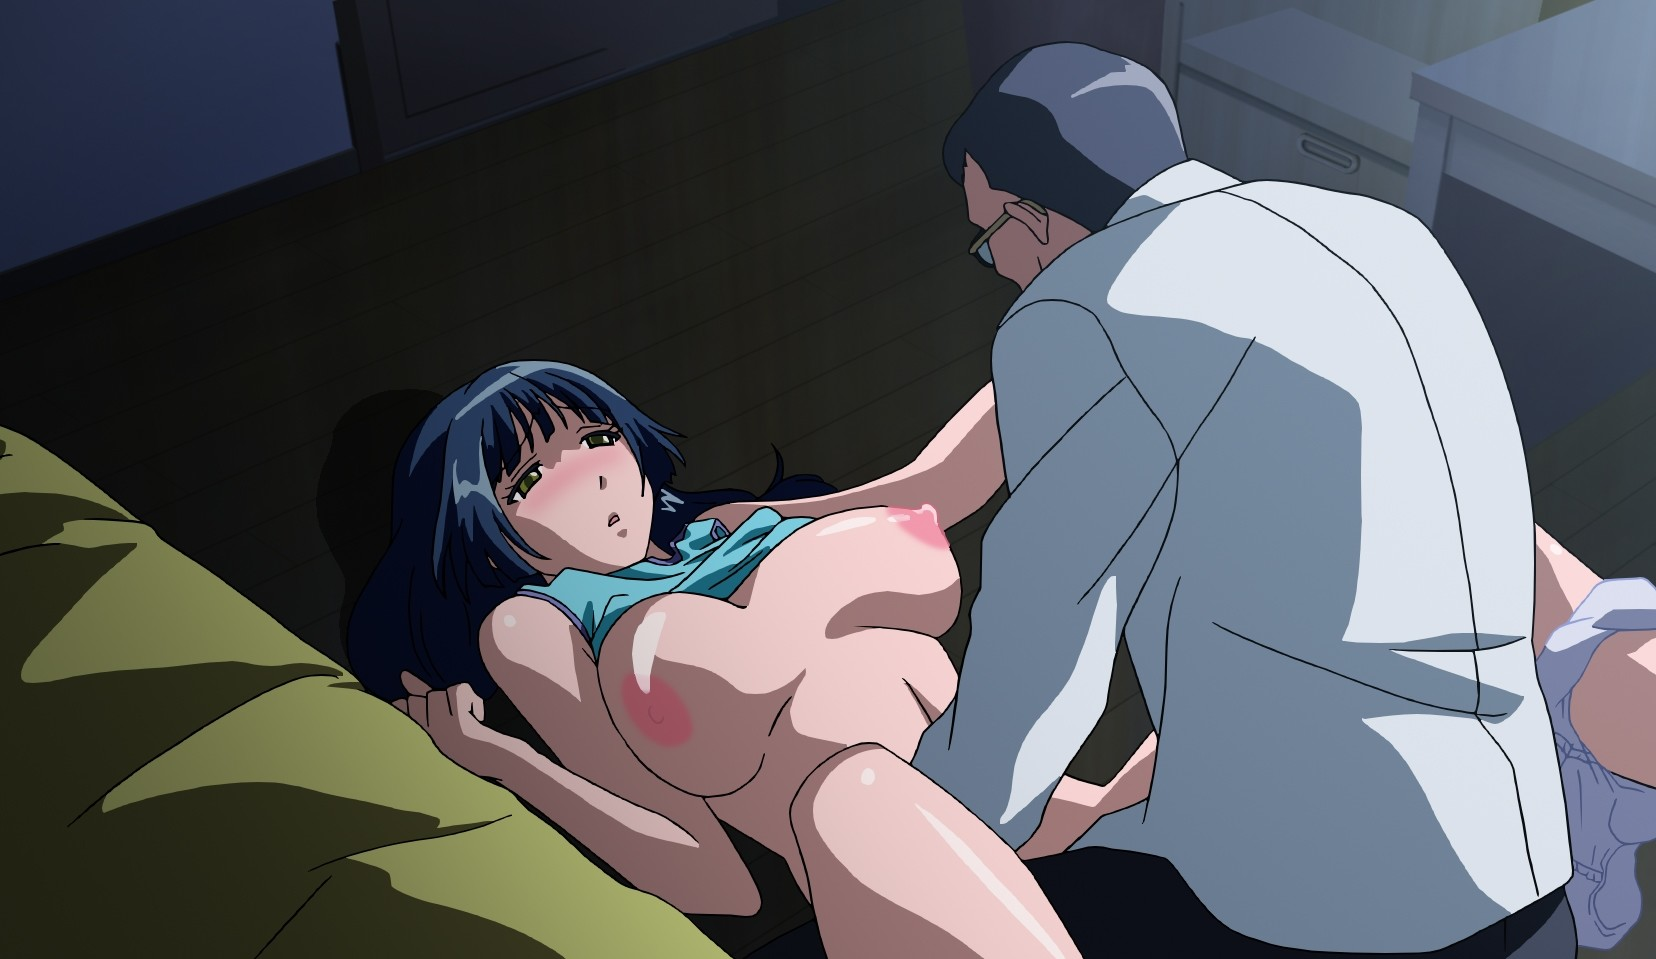 Free Hentai Full Length Picture Download, Comic Free Hosting Web